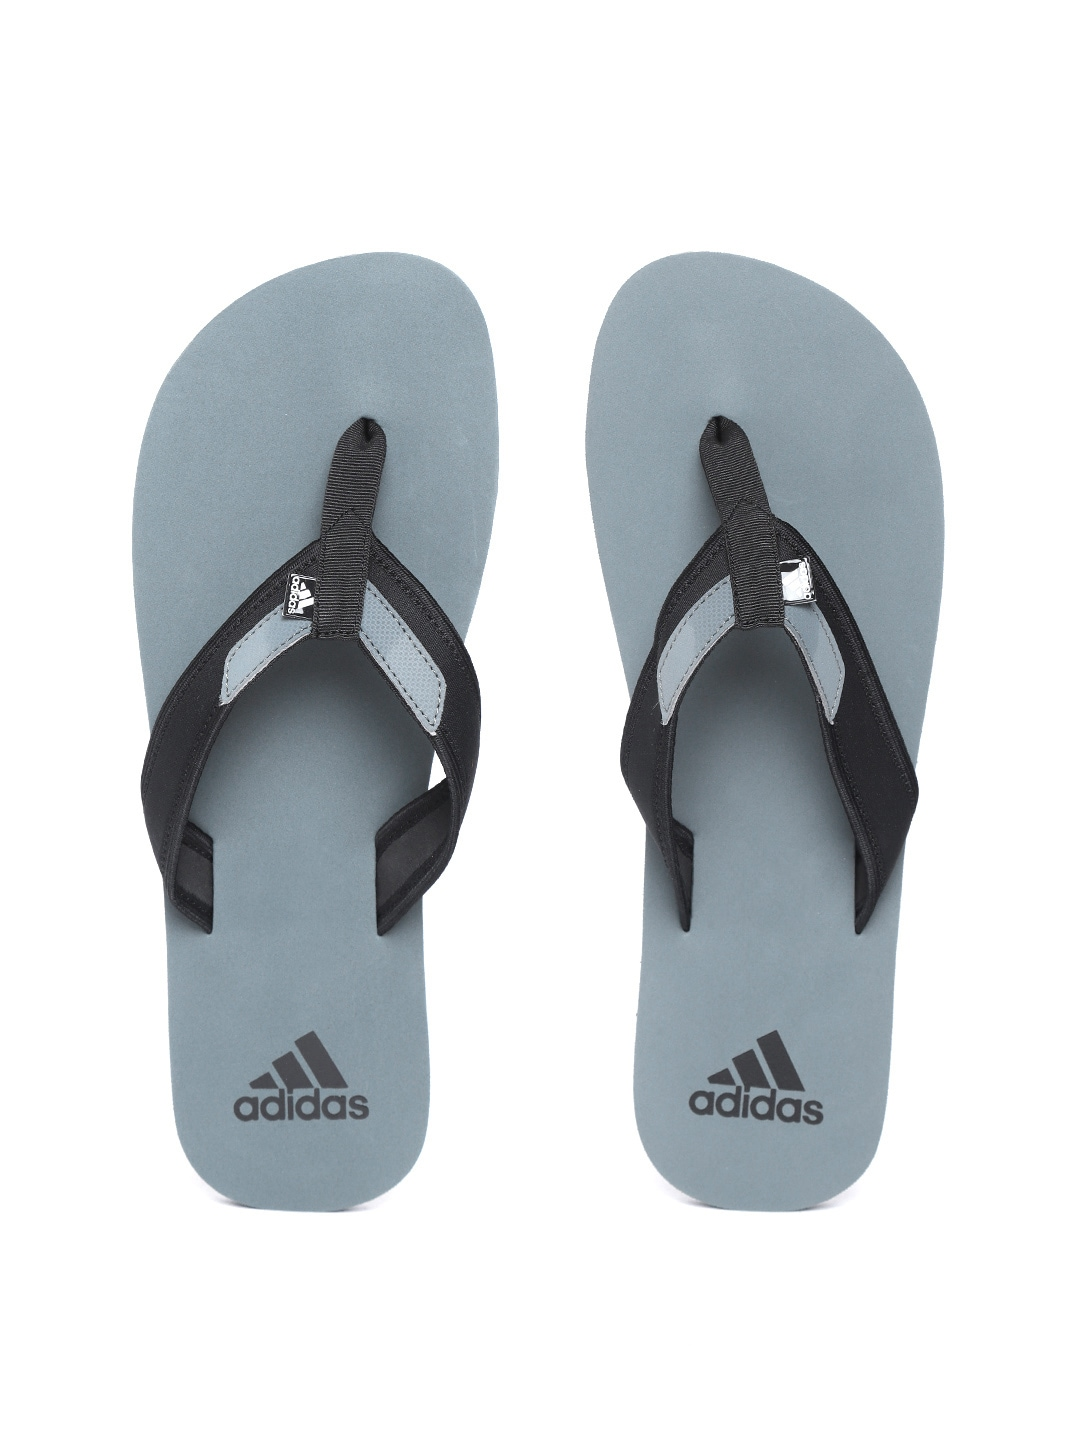 d8eac72f1808 Adidas Adirio Attack 2 Black Flip Flops for Men online in India at ...